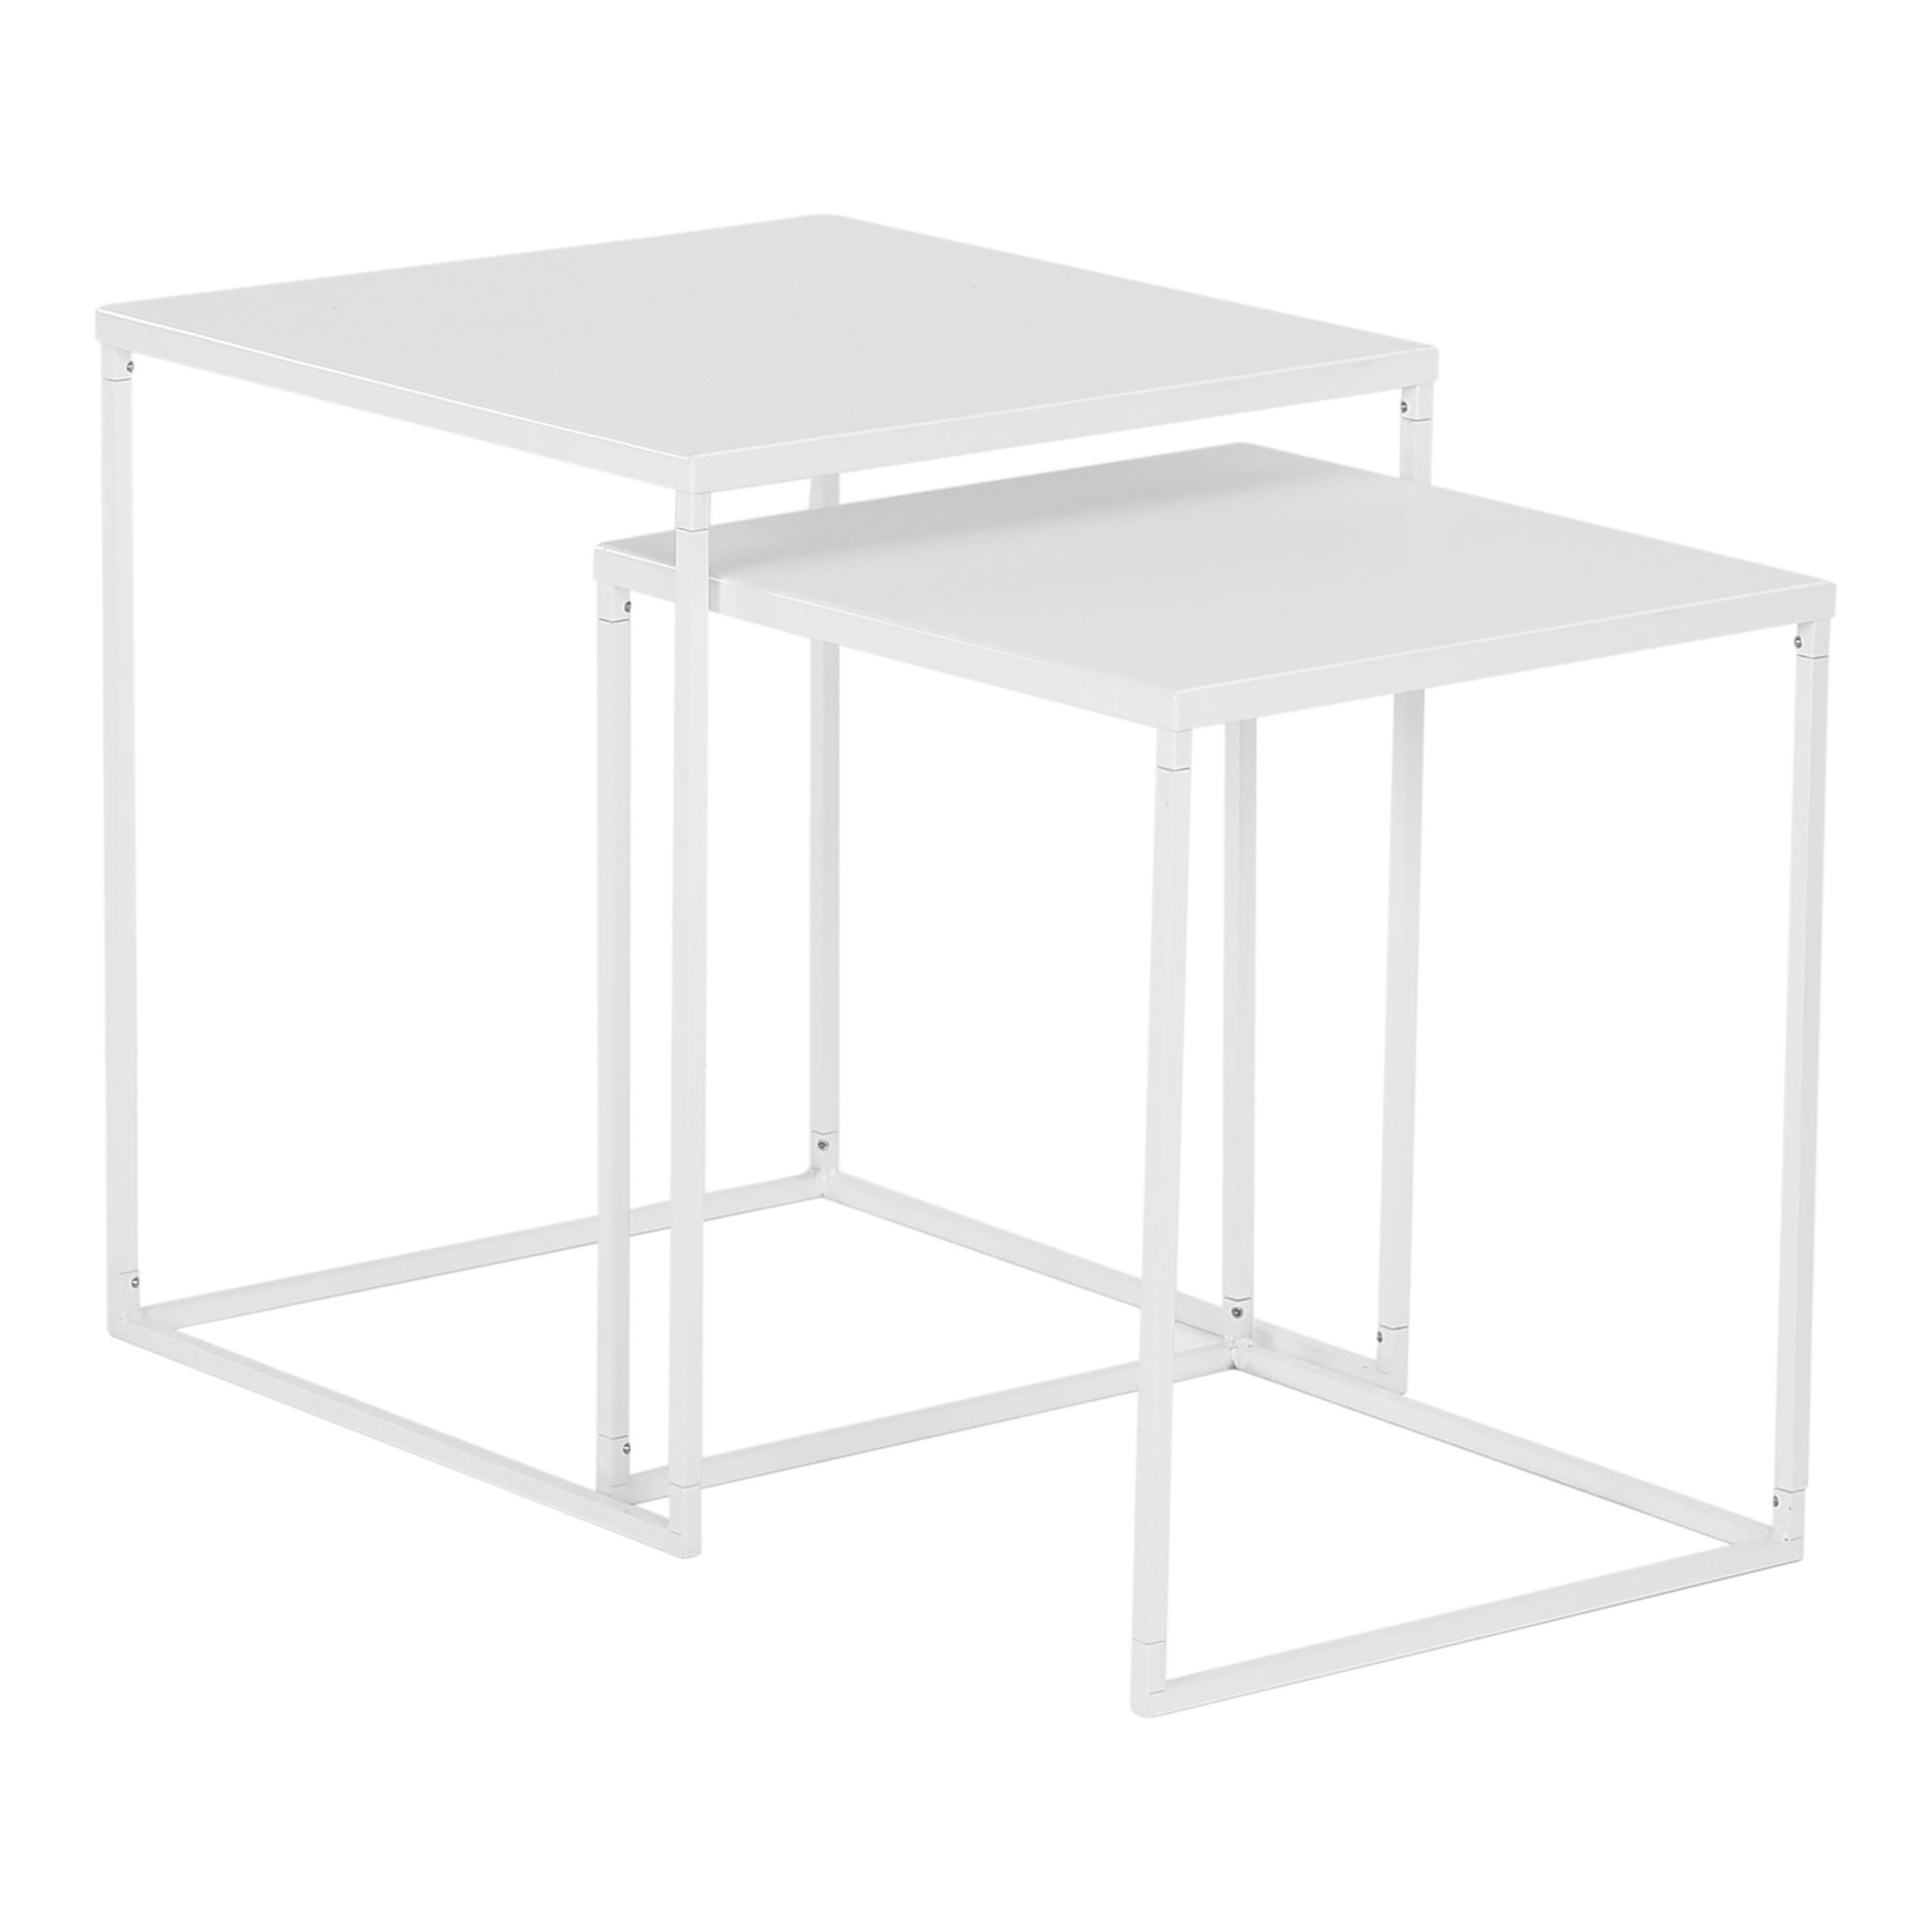 Darnell 2 Piece Metal Nesting Table Set, White